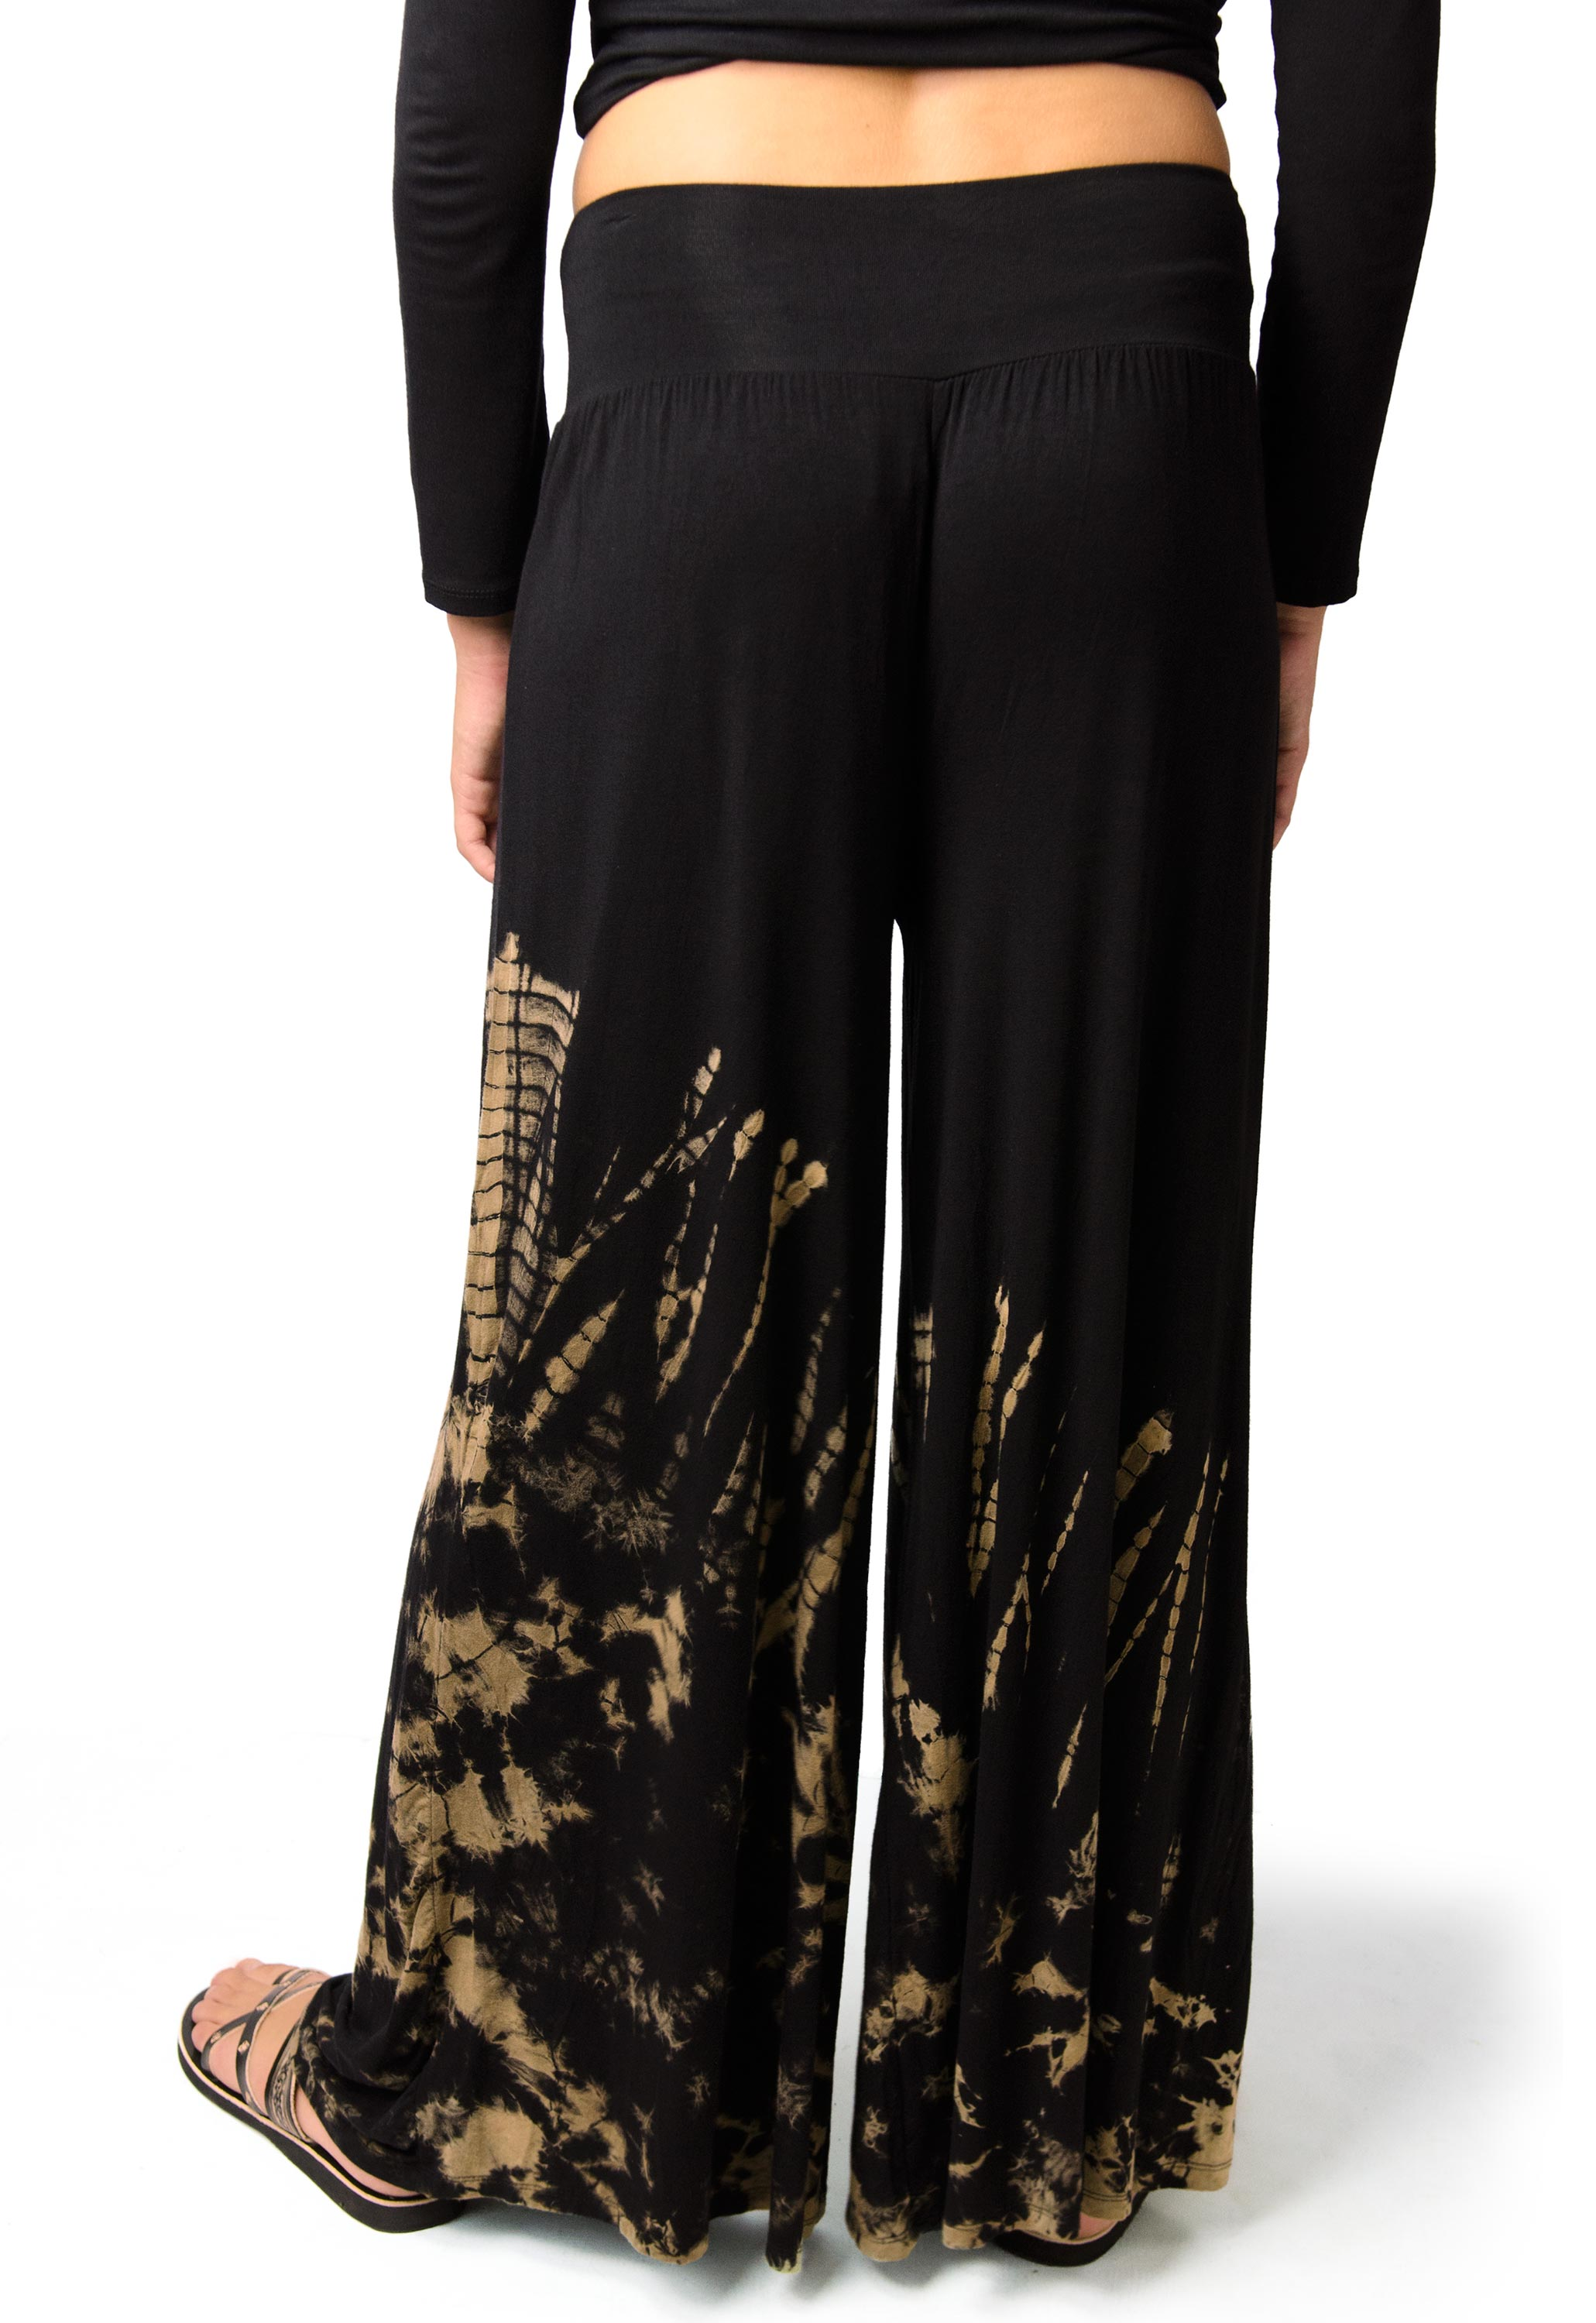 Hand Painted Tie Dye,Wide Leg Pants , Black Tan